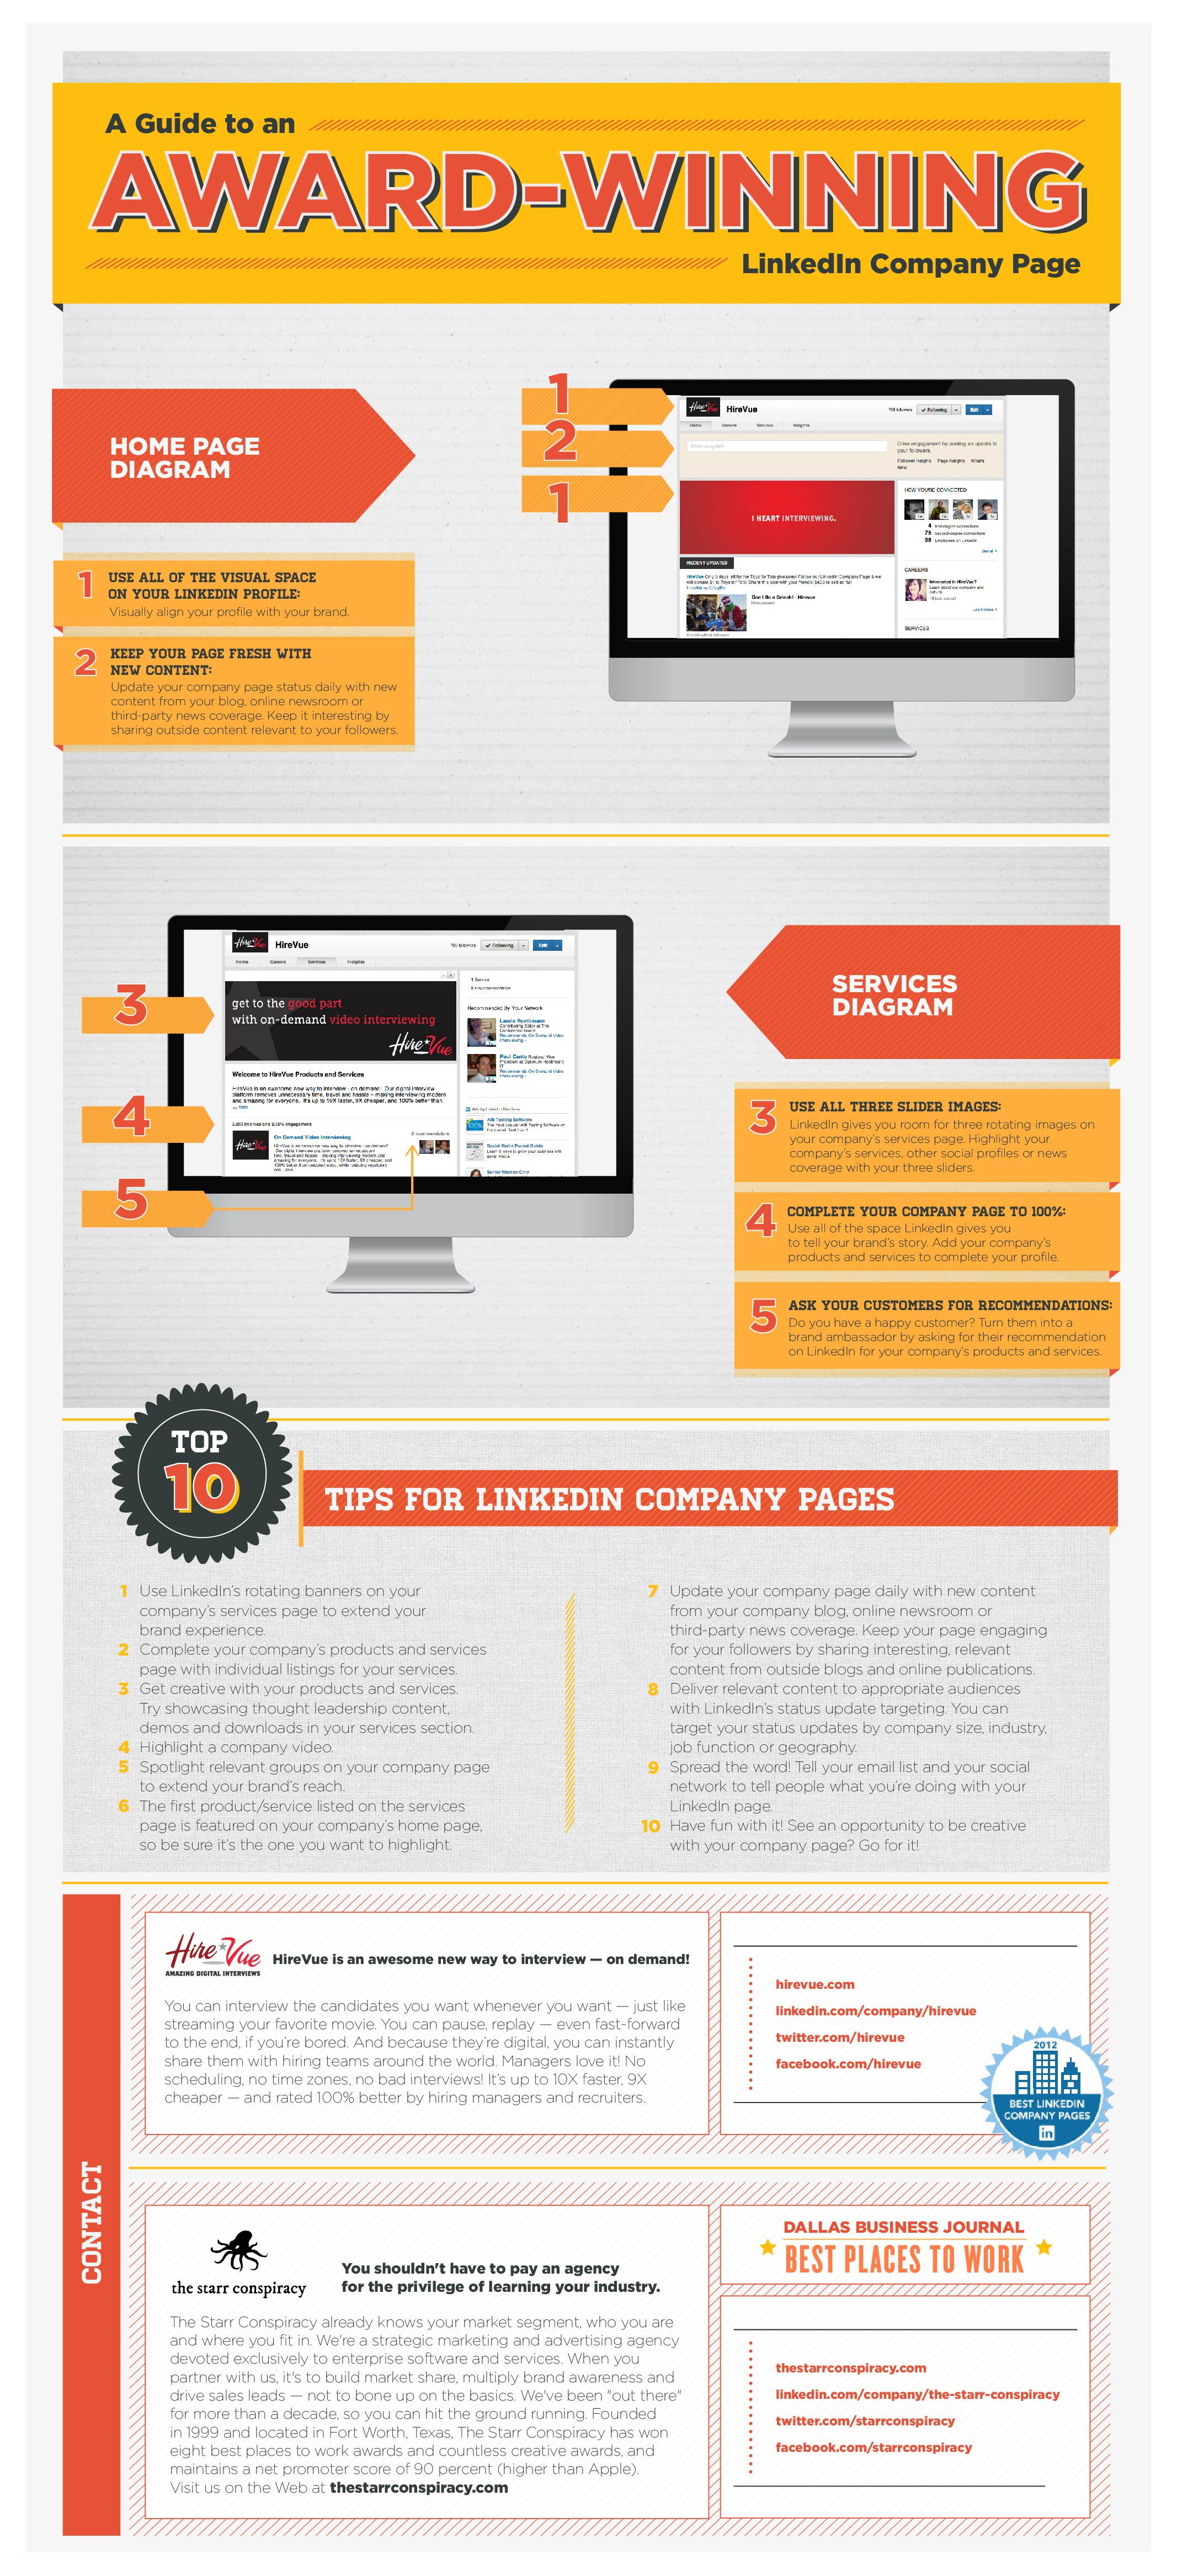 How To Have An Award-Winning LinkedIn Company Page